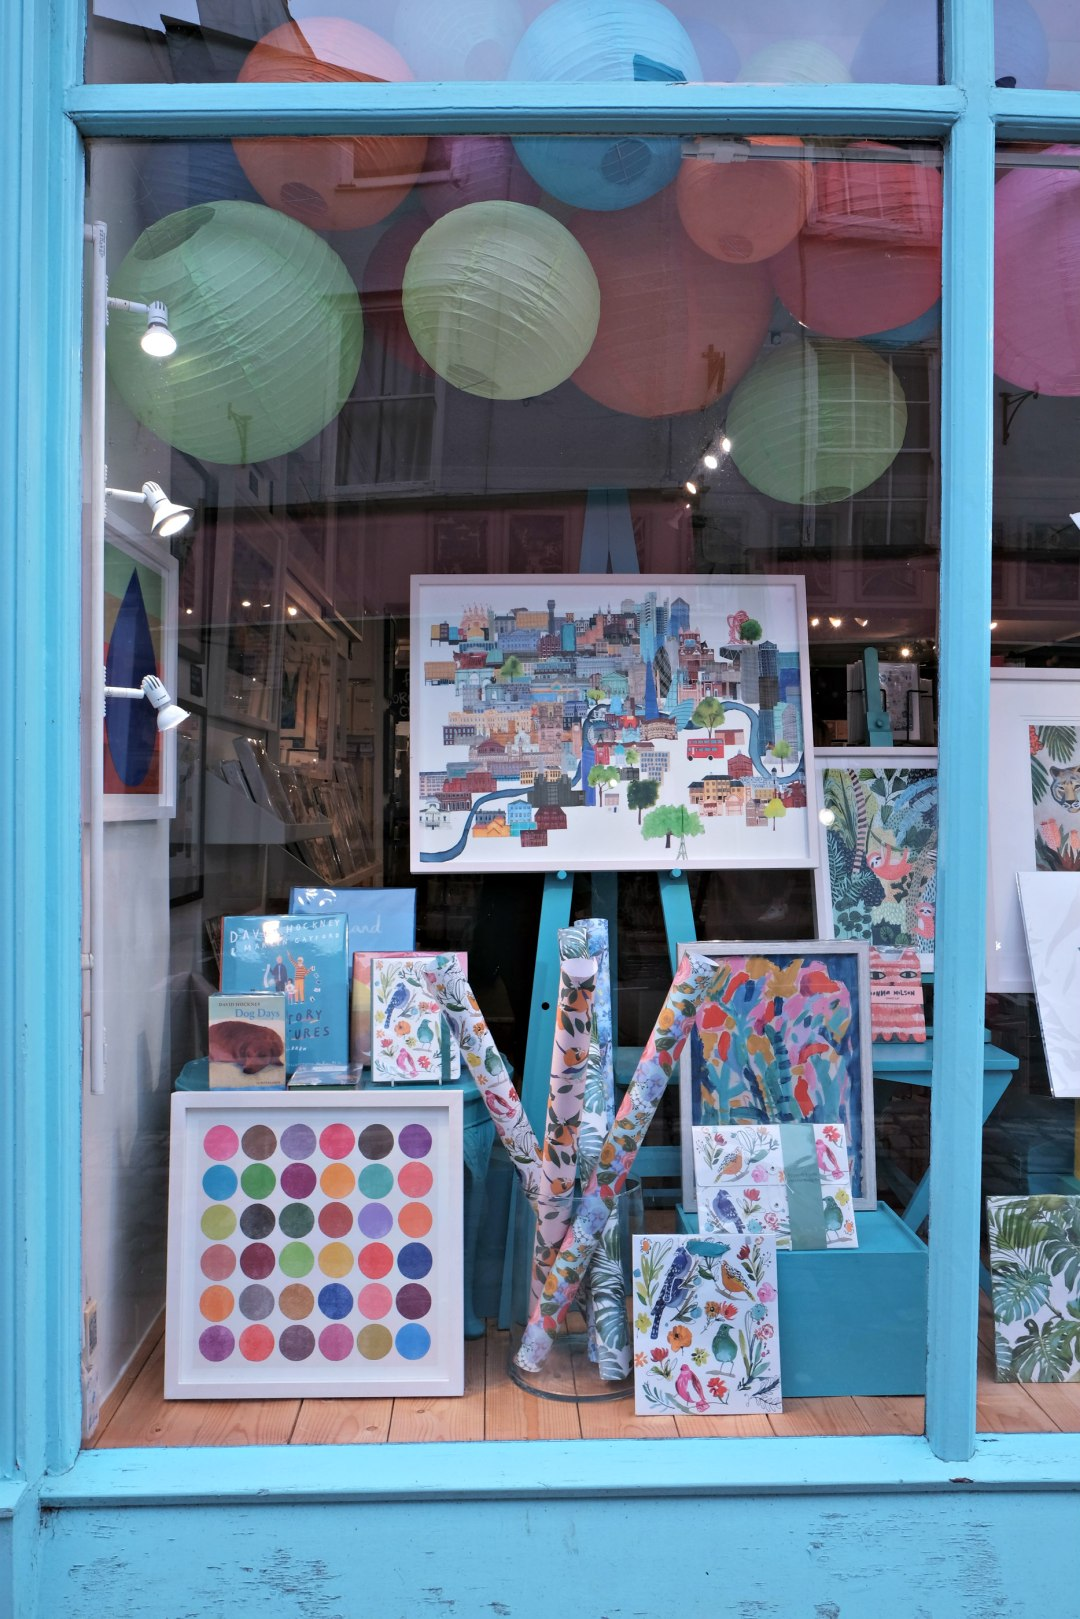 Closer image of sky shop in clifton village.  48 hours in clifton itinerary.